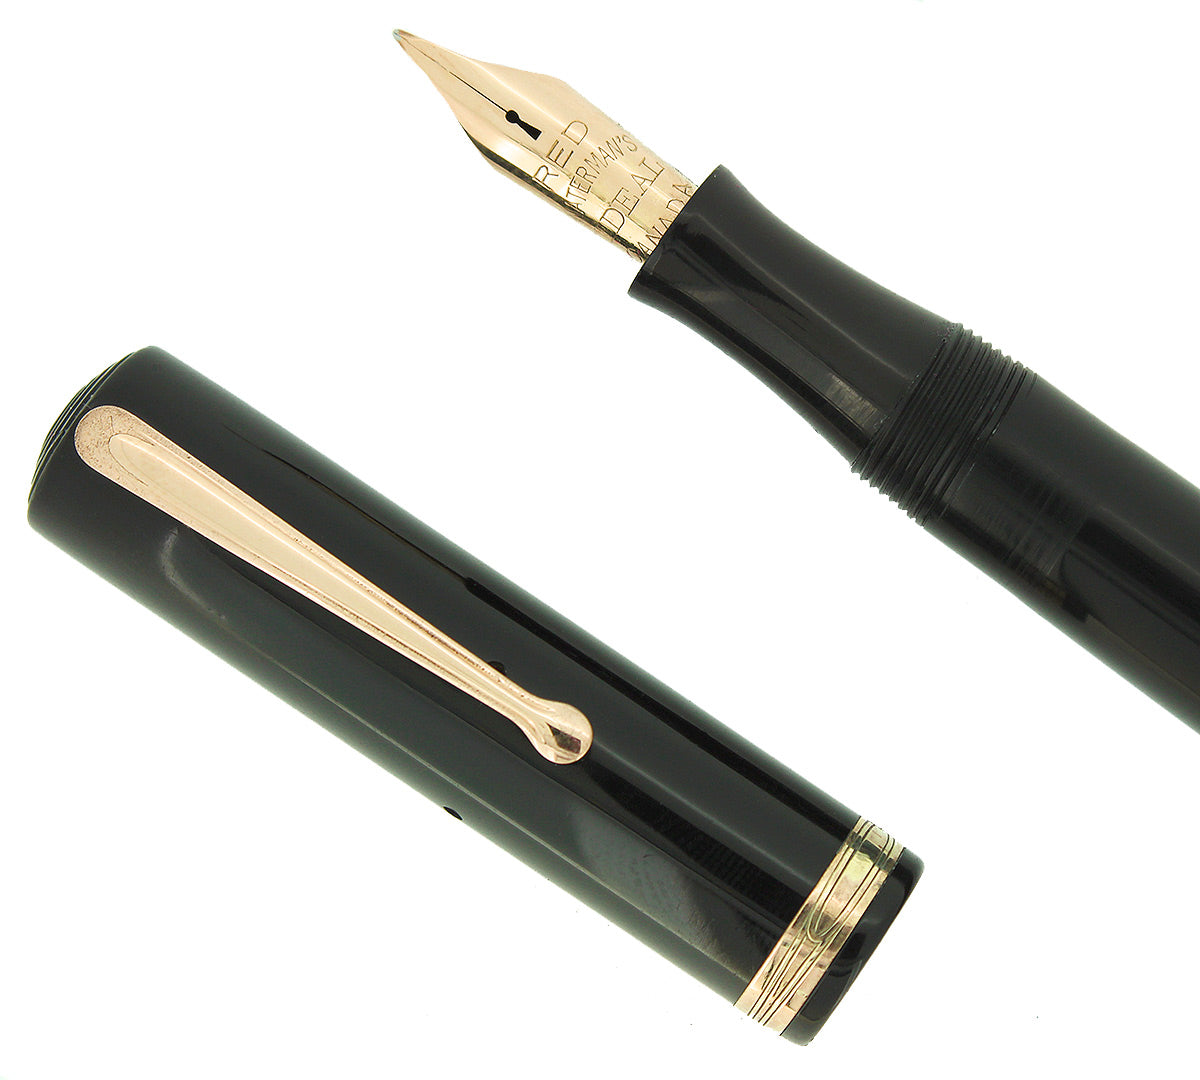 1930 WATERMAN #5 BLACK CELLULOID RED KEYHOLE F-BB NIB FOUNTAIN PEN RESTORED OFFERED BY ANTIQUE DIGGER